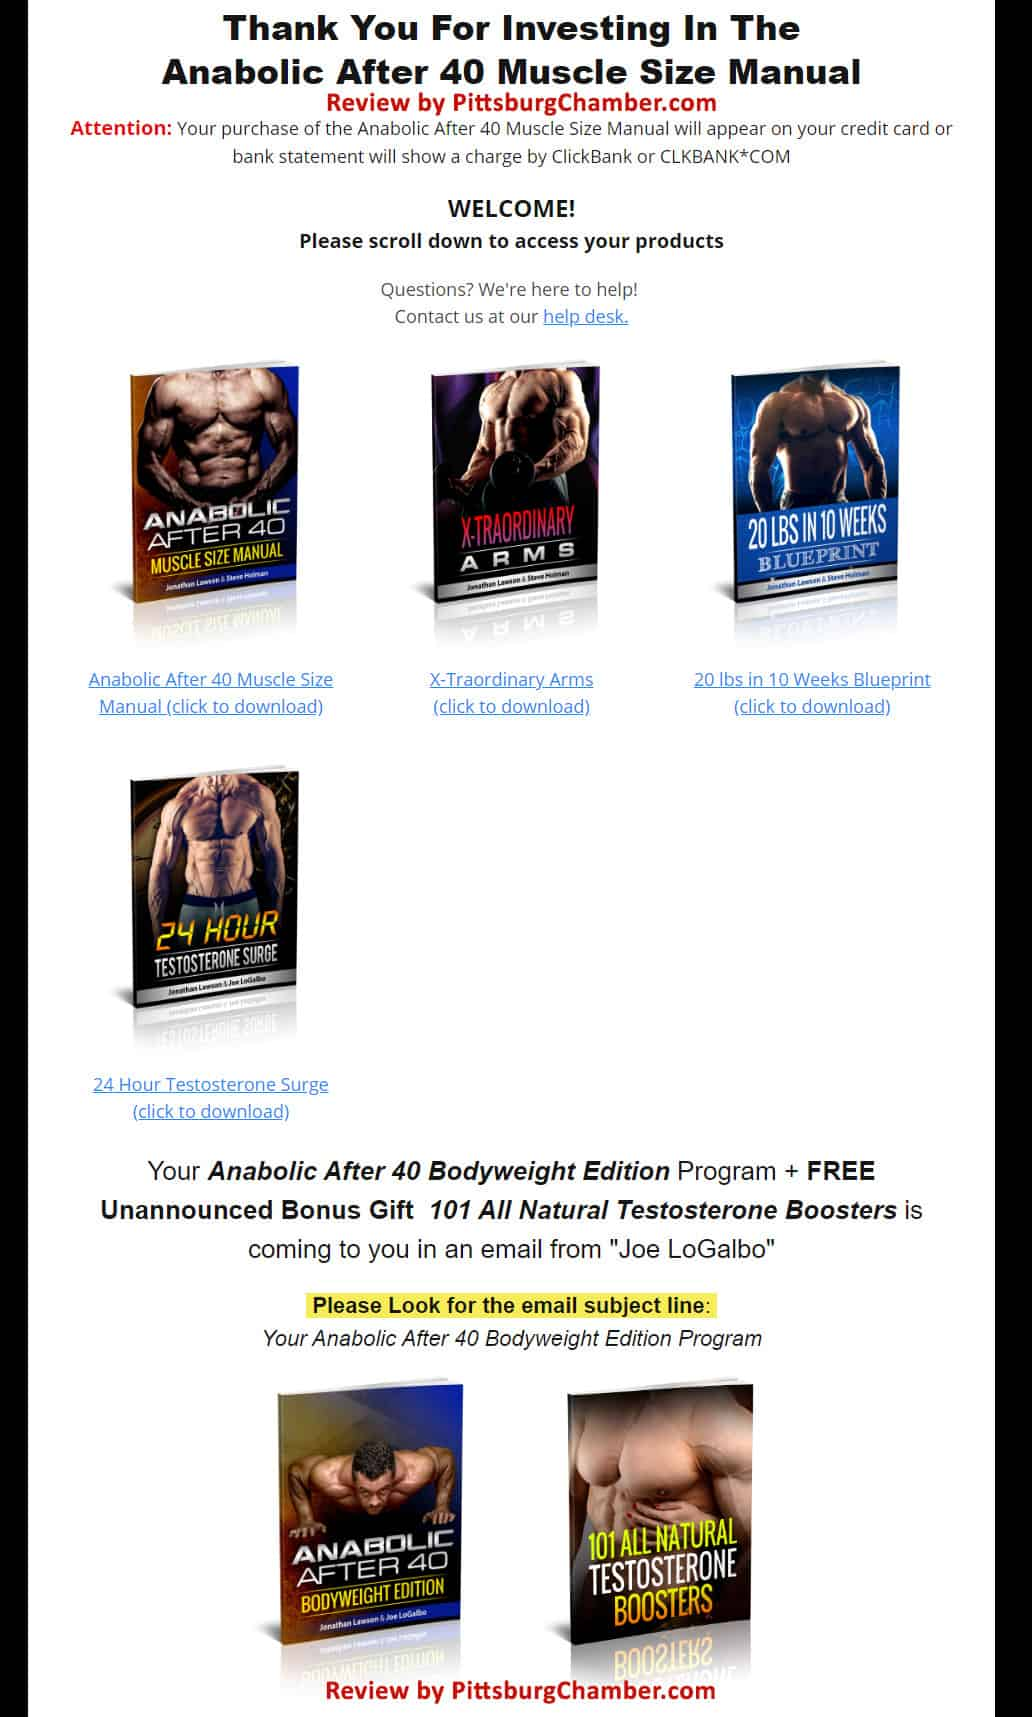 Anabolic After 40 Muscle Size Manual Download Page